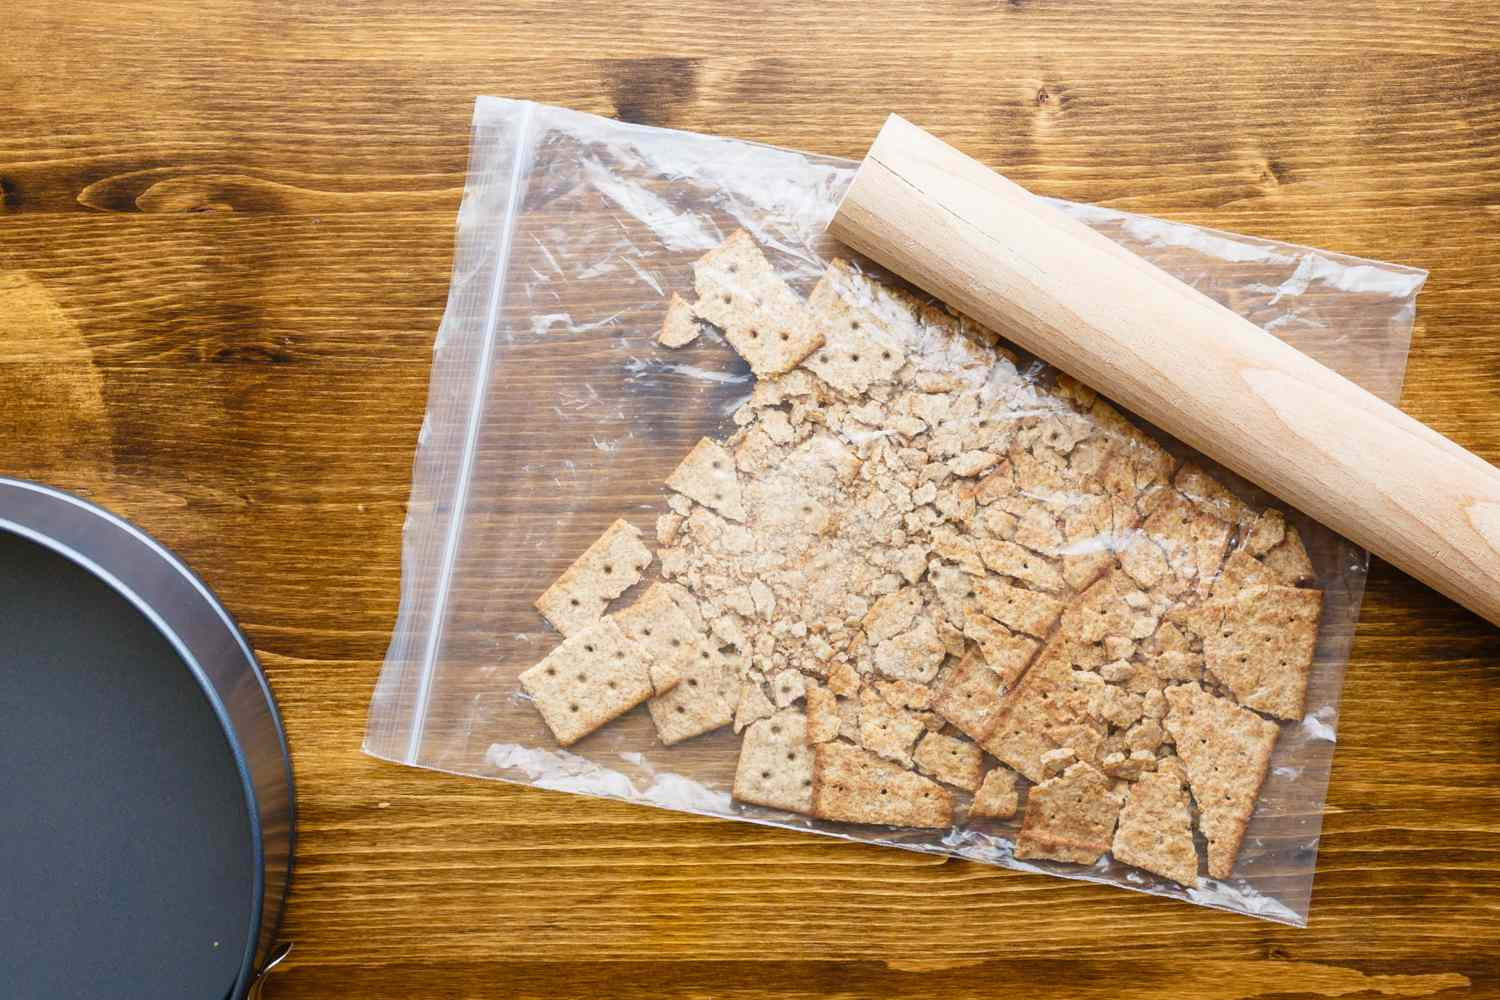 Break up graham crackers with a rolling pin